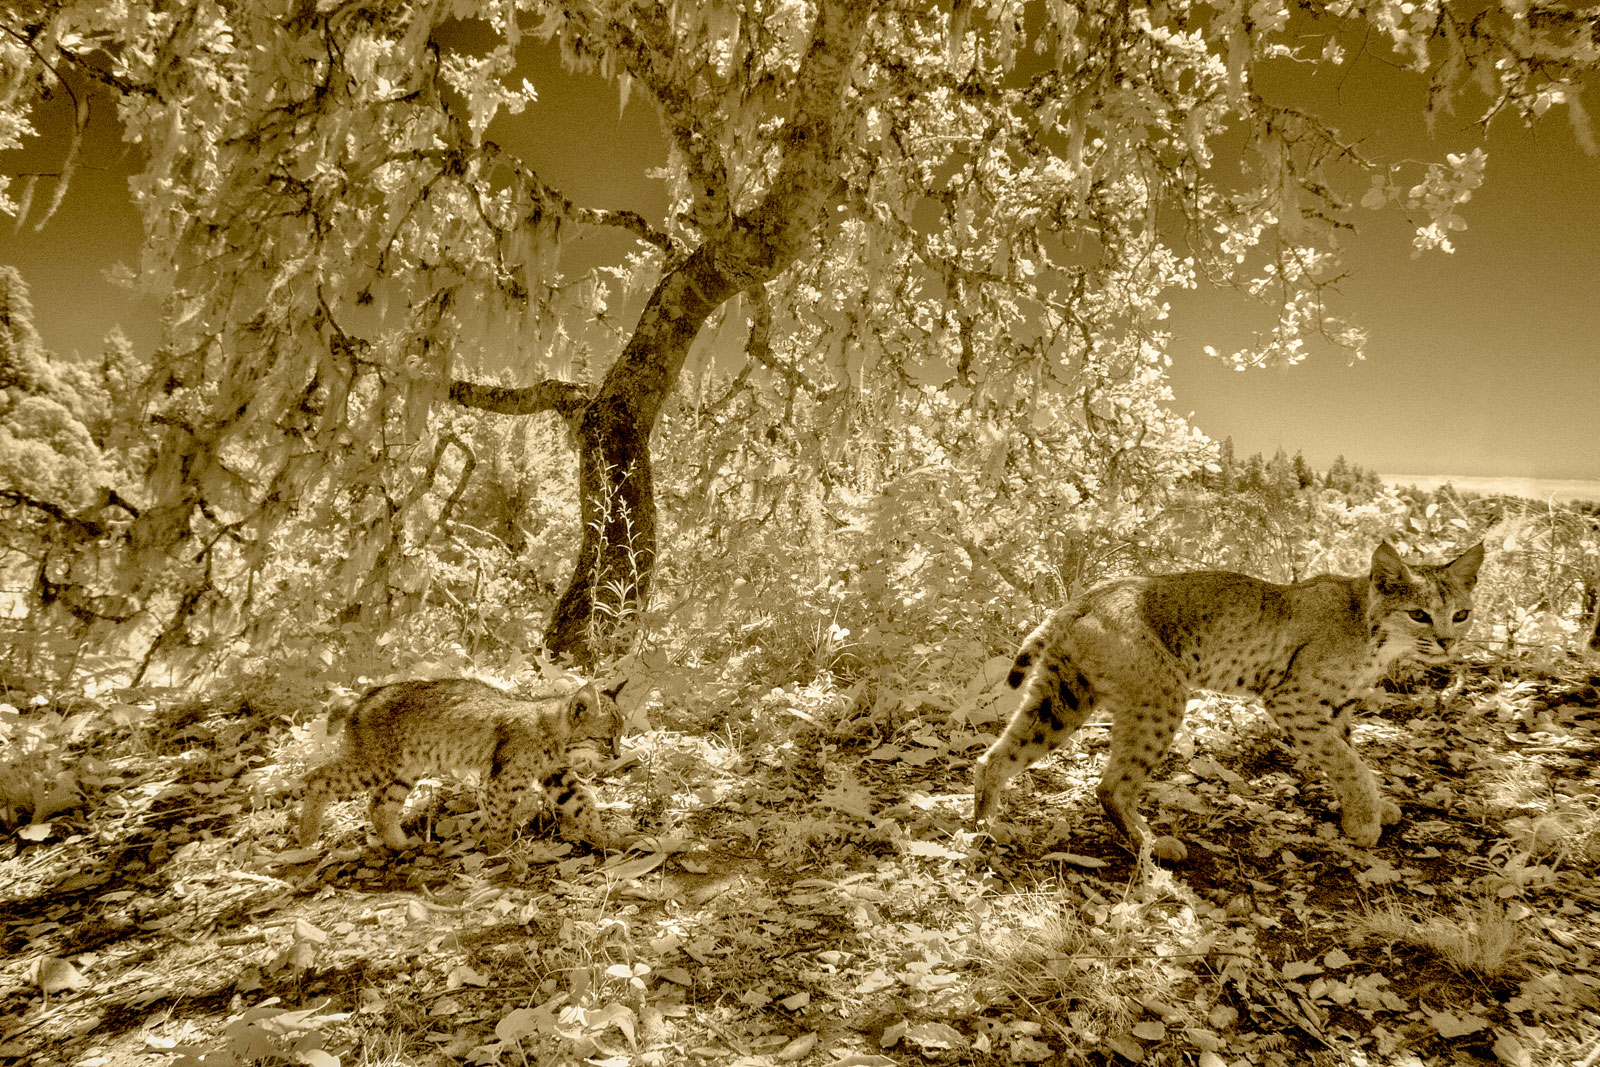 Bobcat and kitten caught by camera trap, Majors Canyon, Monterey Bay, California, USA